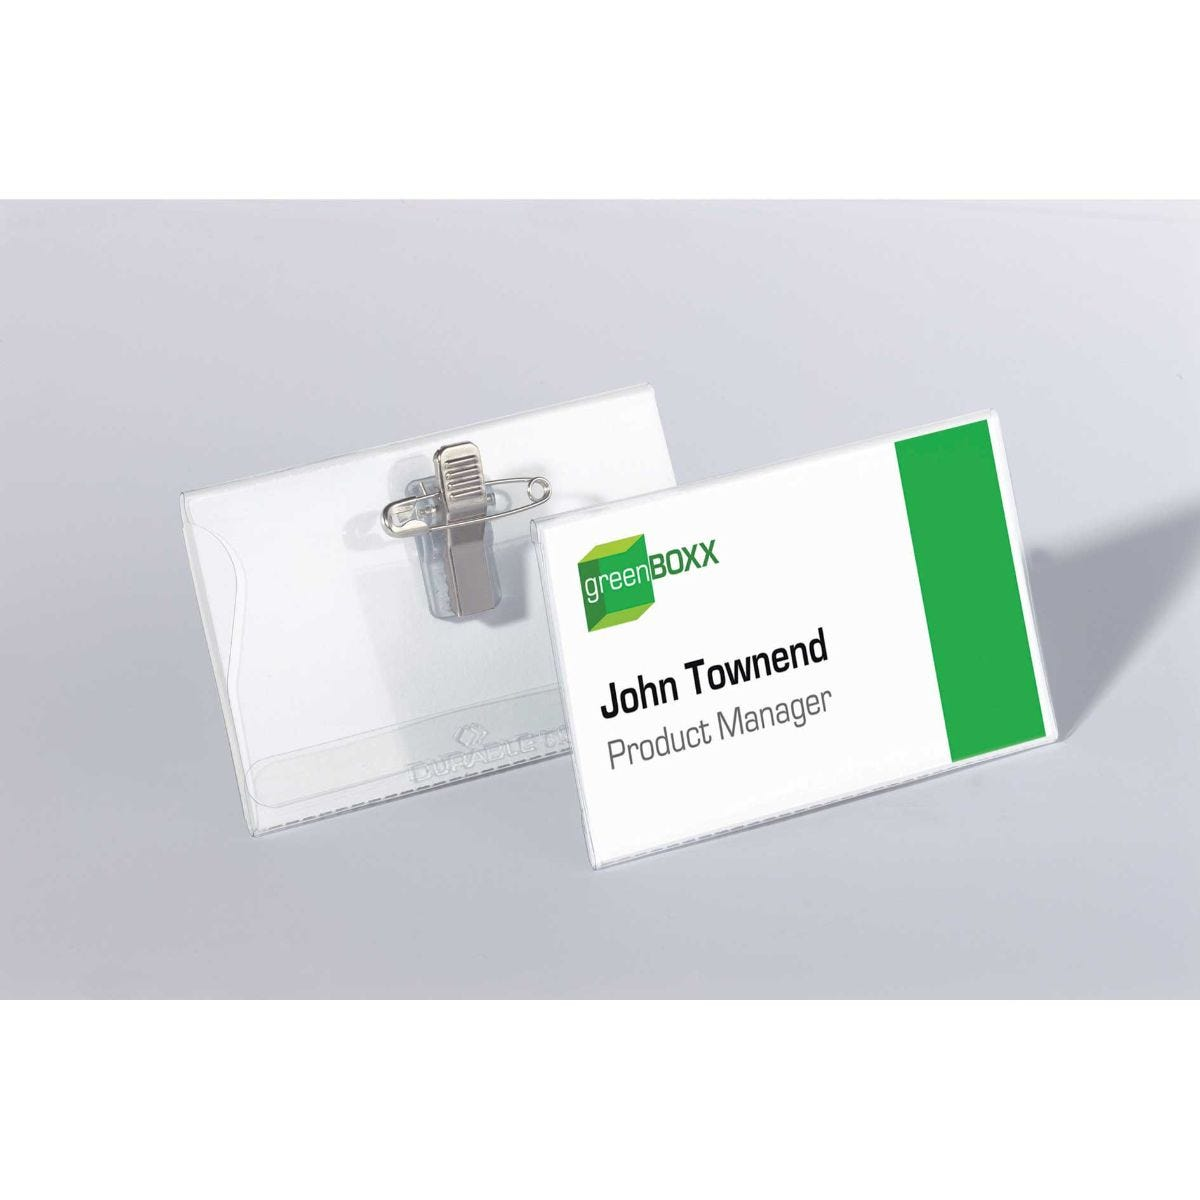 Name badges id card holders conference supplies presentation name badges id card holders conference supplies presentation equipment office supplies ryman reheart Images